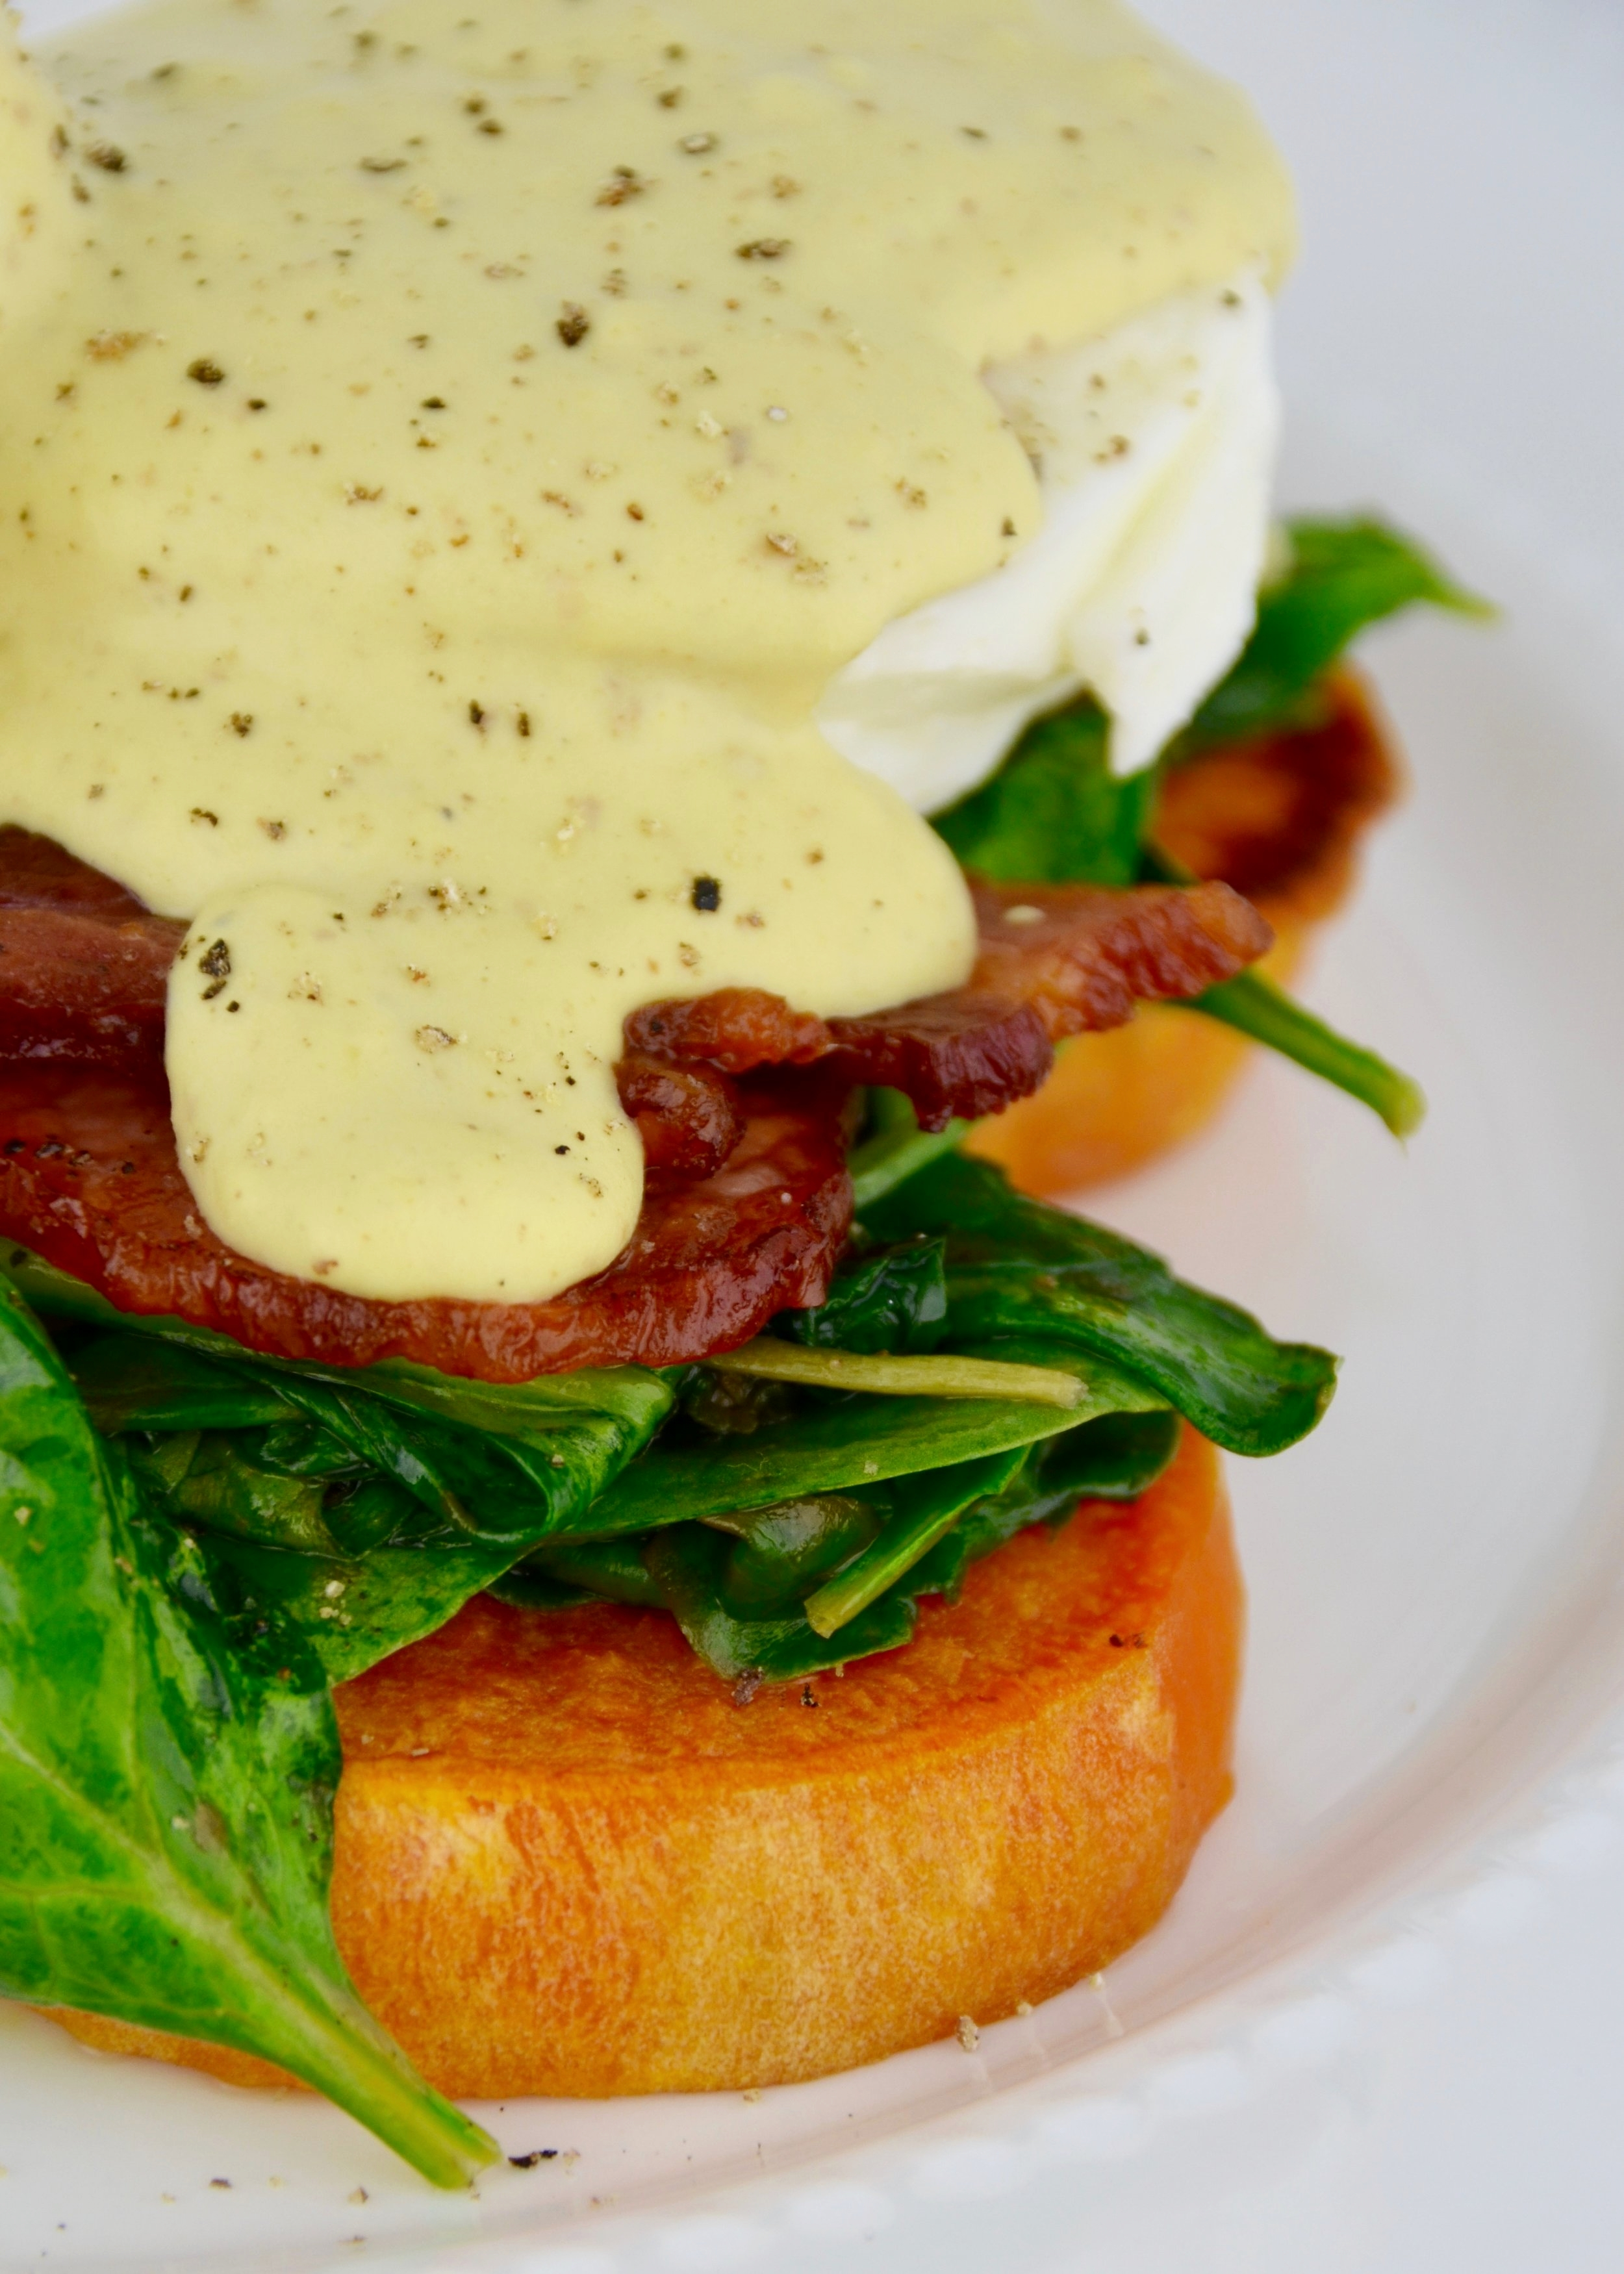 - I have a small threshold for digesting dairy products. I do, however, love creamy delicious foods. I am always looking for healthy, digestible alternatives so that is why I created this cashew hollandaise.